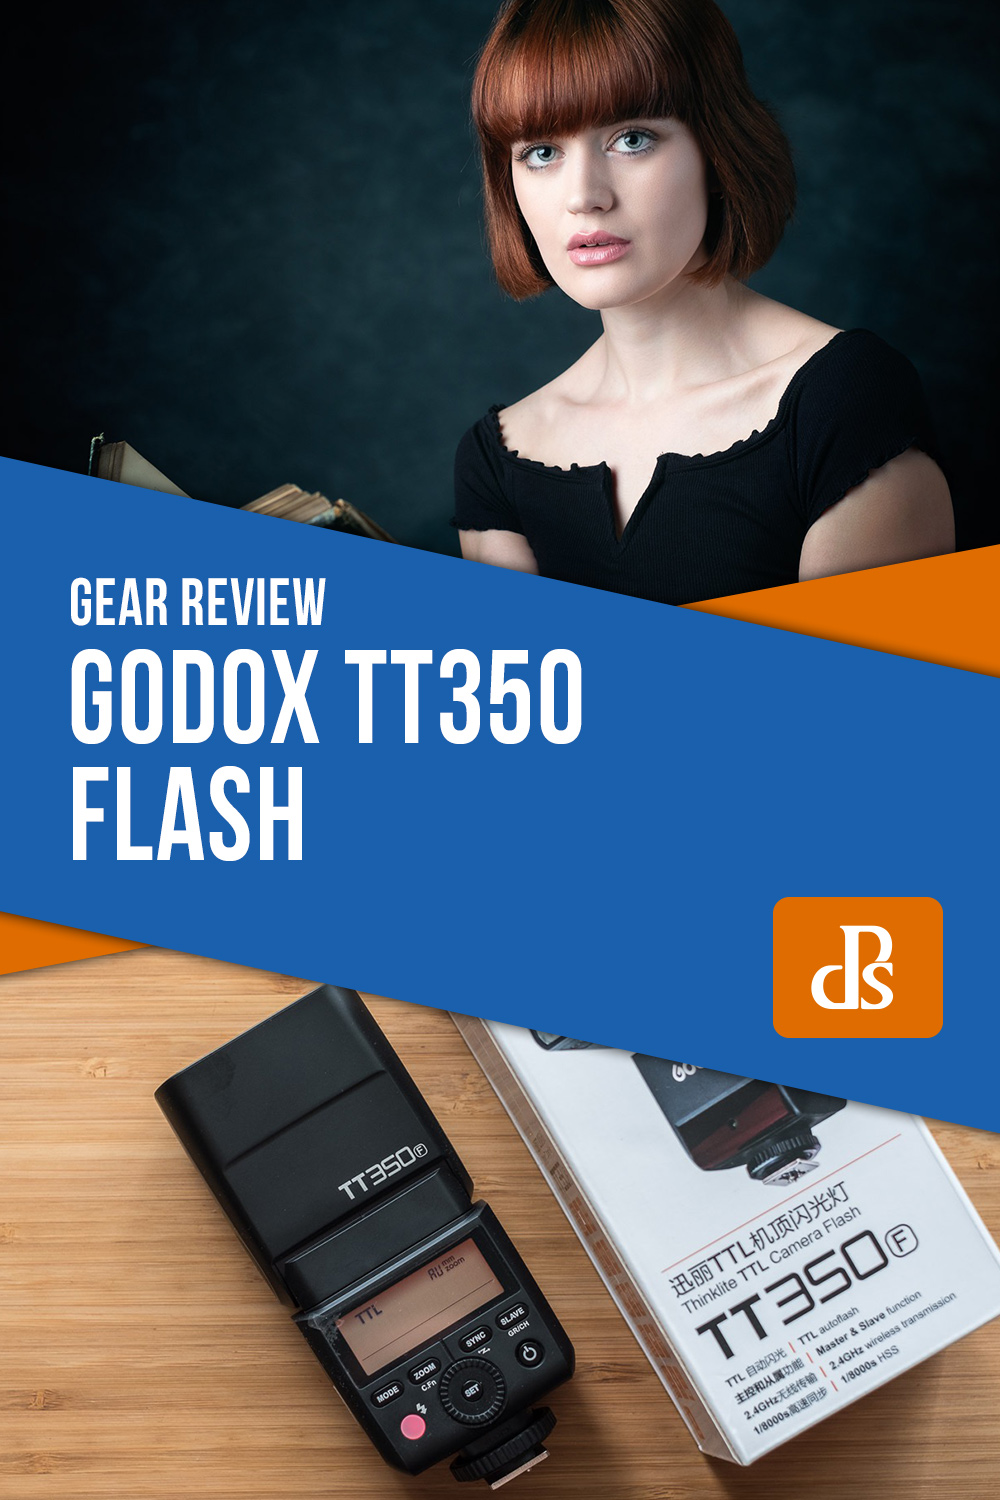 Godox TT350 Flash Review – the Little Flash that Can